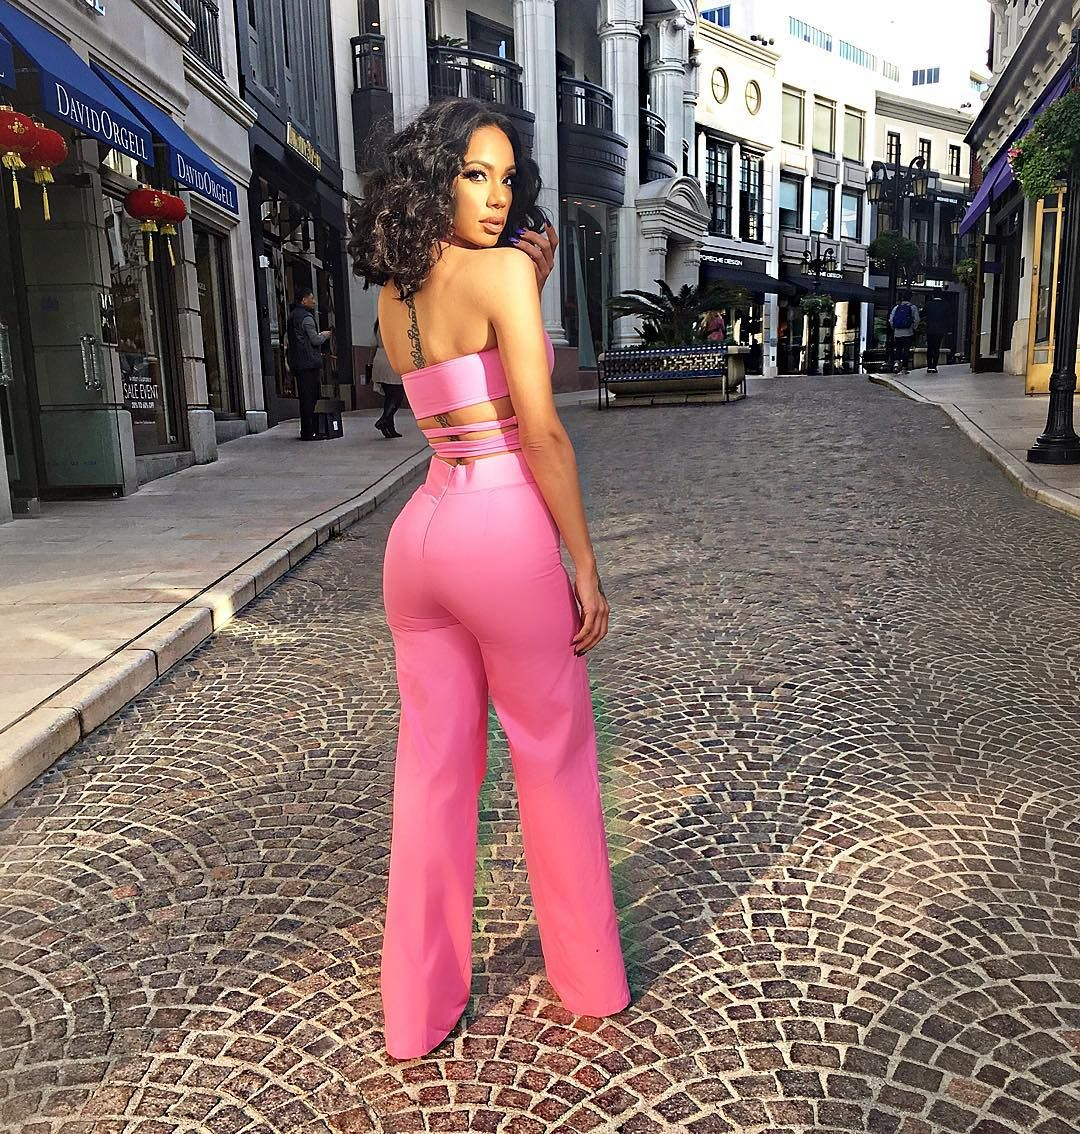 Erica Mena Talks About Why She And Safaree Decided To Get Only Fans Accounts - See The Video